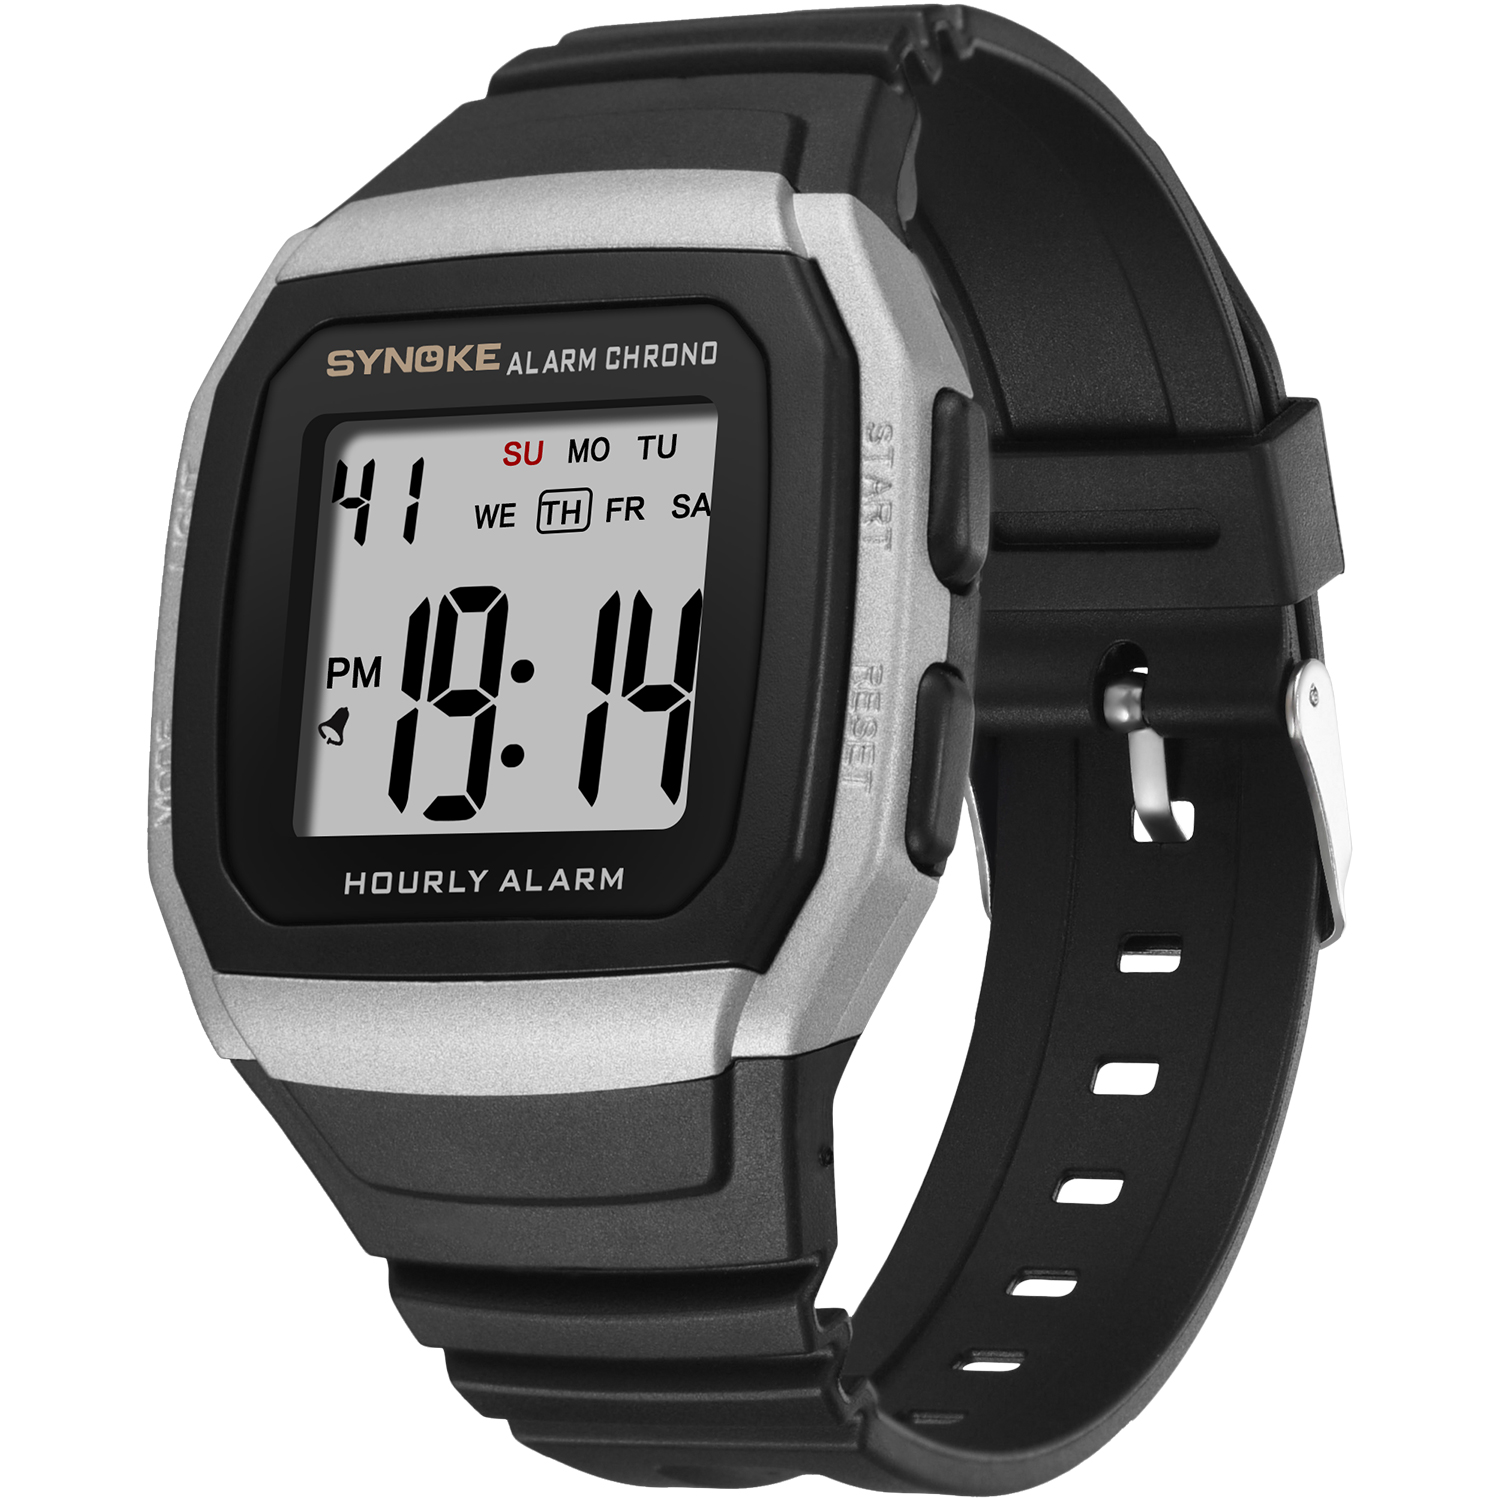 PANARS Sports Outdoor Electronic Watch Pu Strap Alarm Clock Timing Men Watch Waterproof Multi Function Military Watches 2019